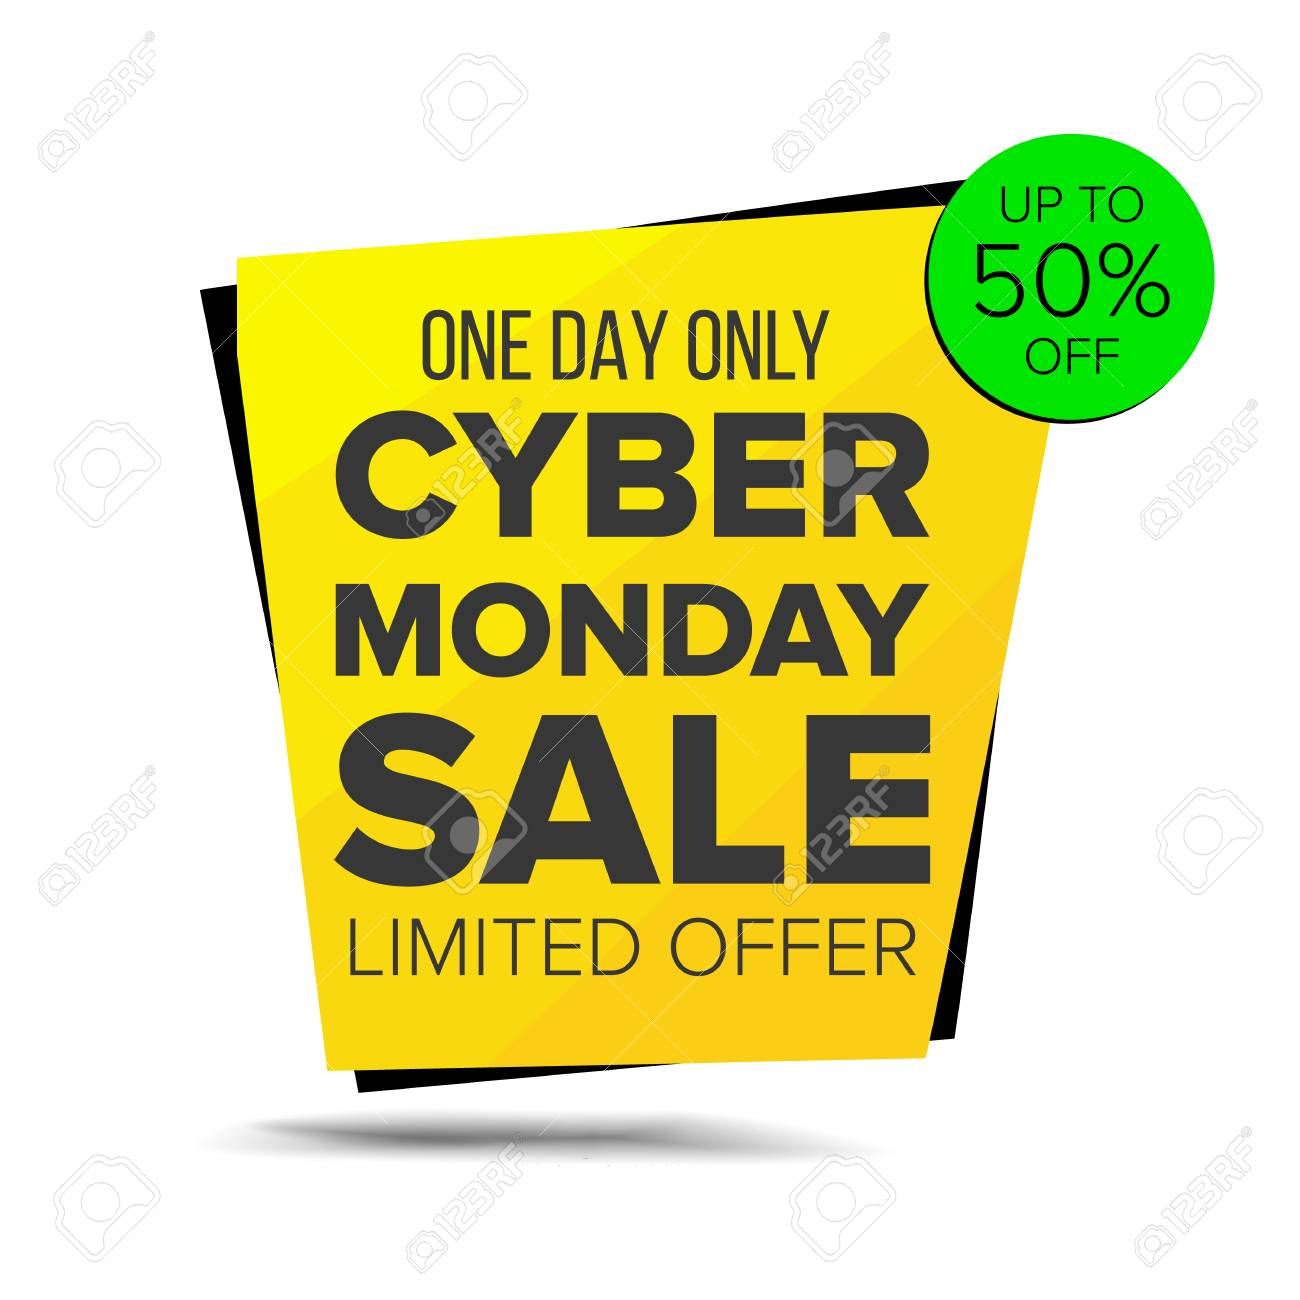 a9f5f0143b2 Cyber Monday Sale Banner Vector. Up To 50 Percent Off Monday..